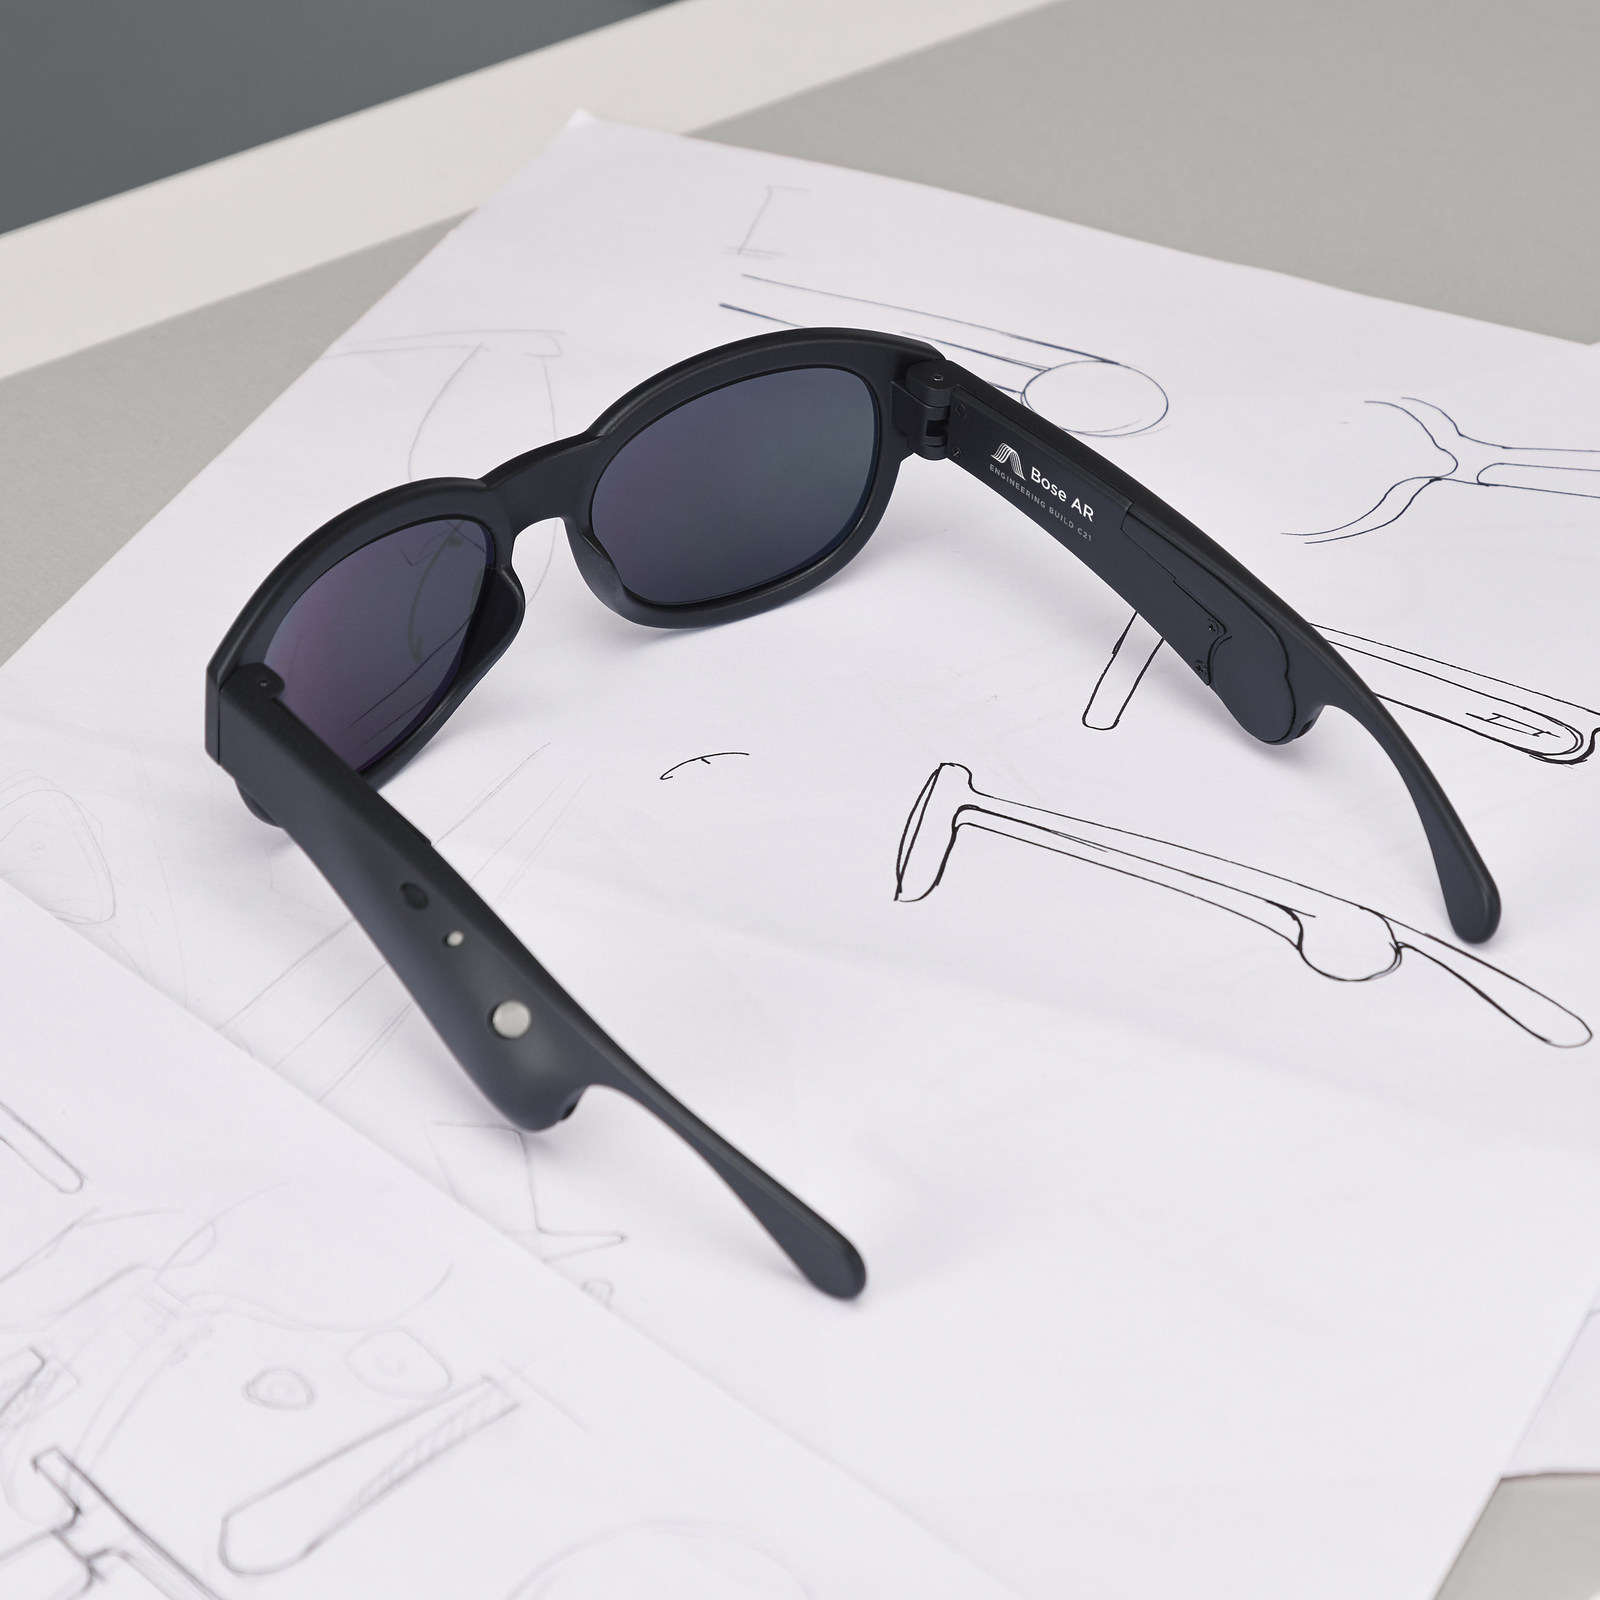 Bose introduces audio augmented reality platform and unveils the future of mobile sound in eyewear prototype